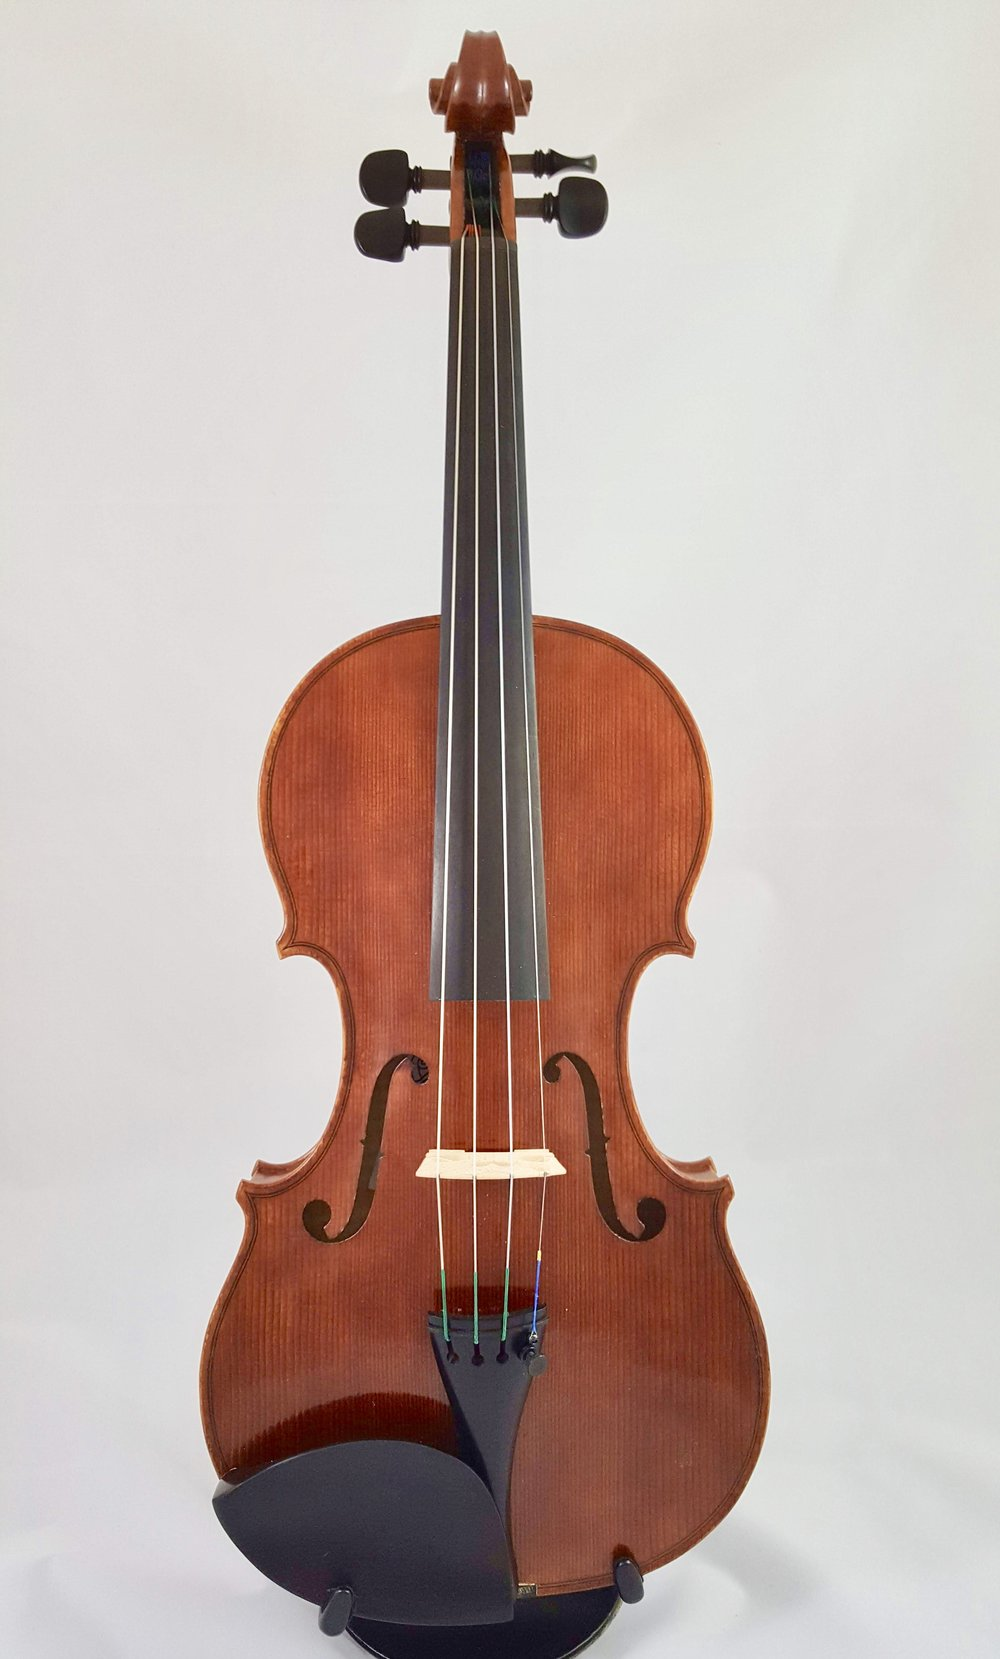 Robyn SullivanAmati Model VIOLIN - This smaller bodied violin has a surprisingly strong voice with a full and even tone, excellent for a player who wants their voice to stand out!Price $5000*Currently at Chicago Strings